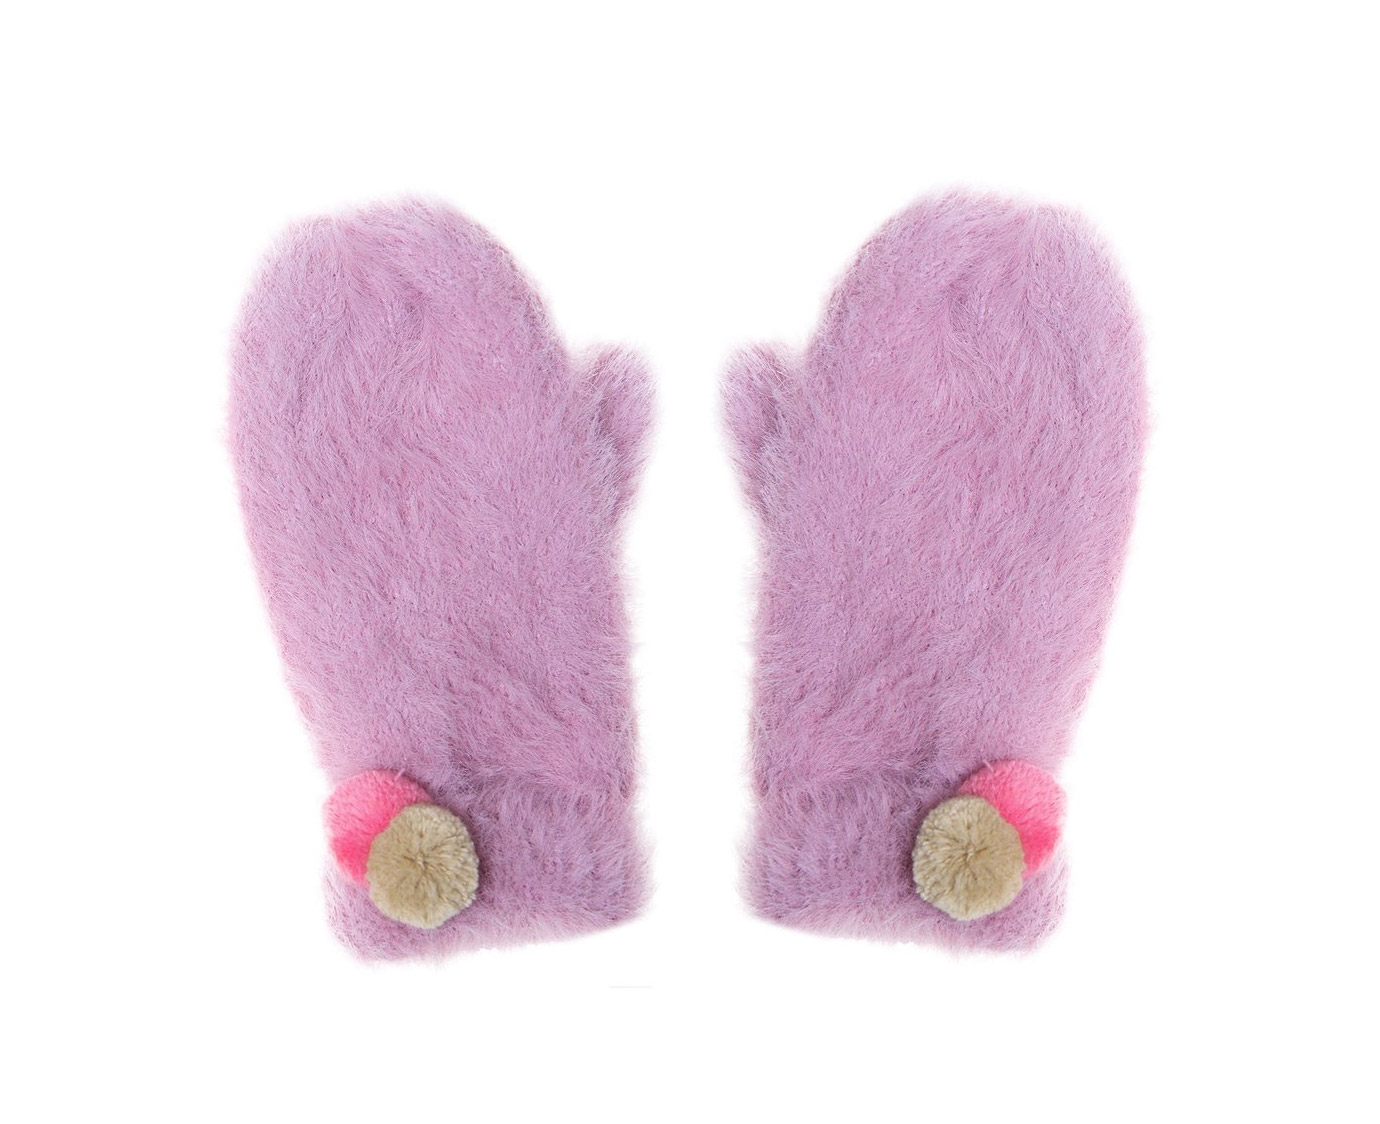 Wanten 'Fluffy pink'